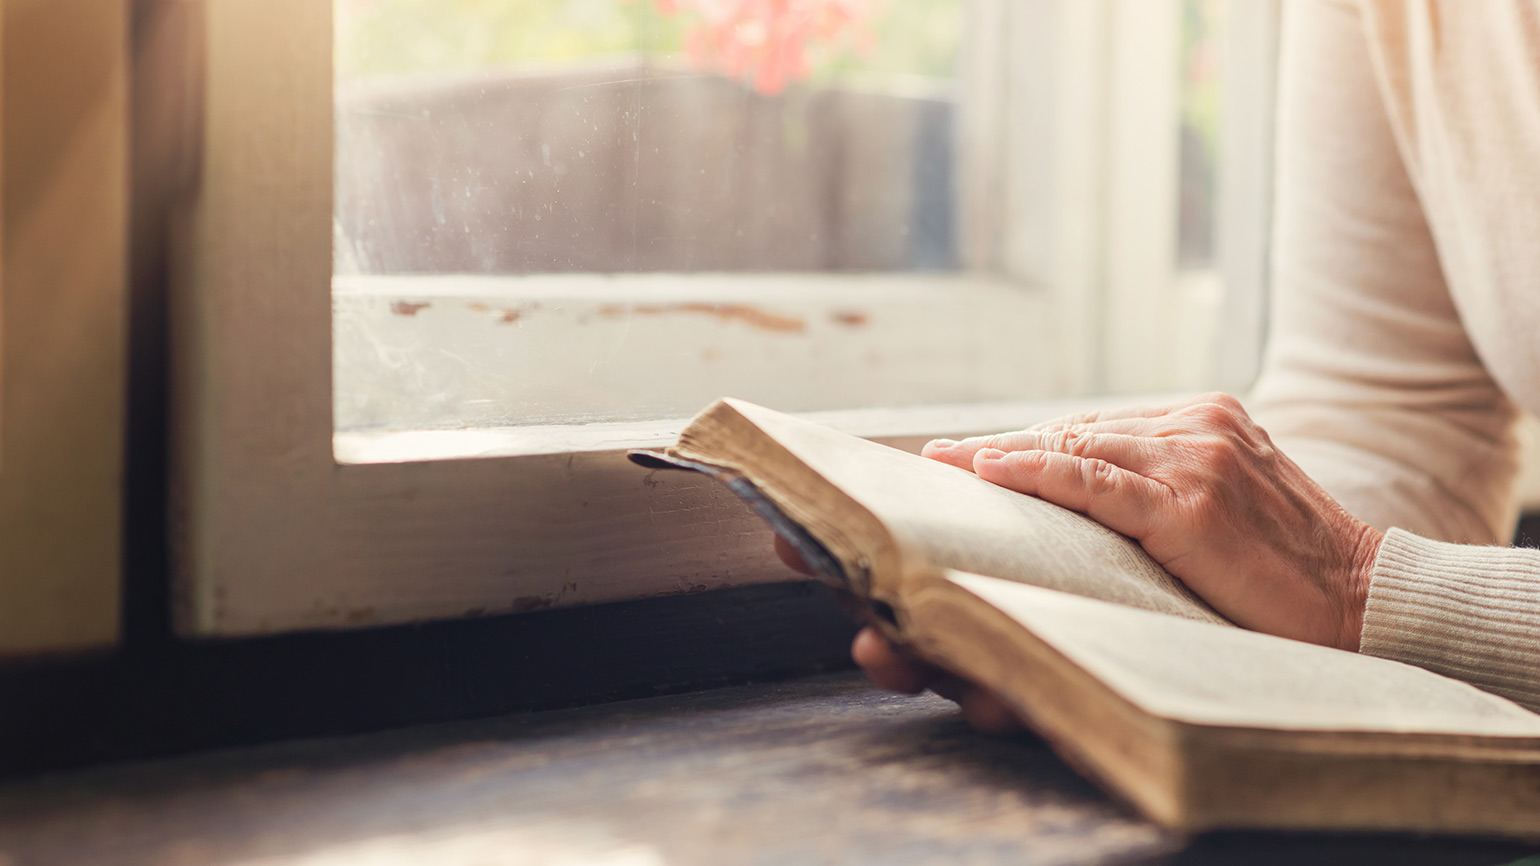 A woman reads her Bible while seated by a window where the sun shines in